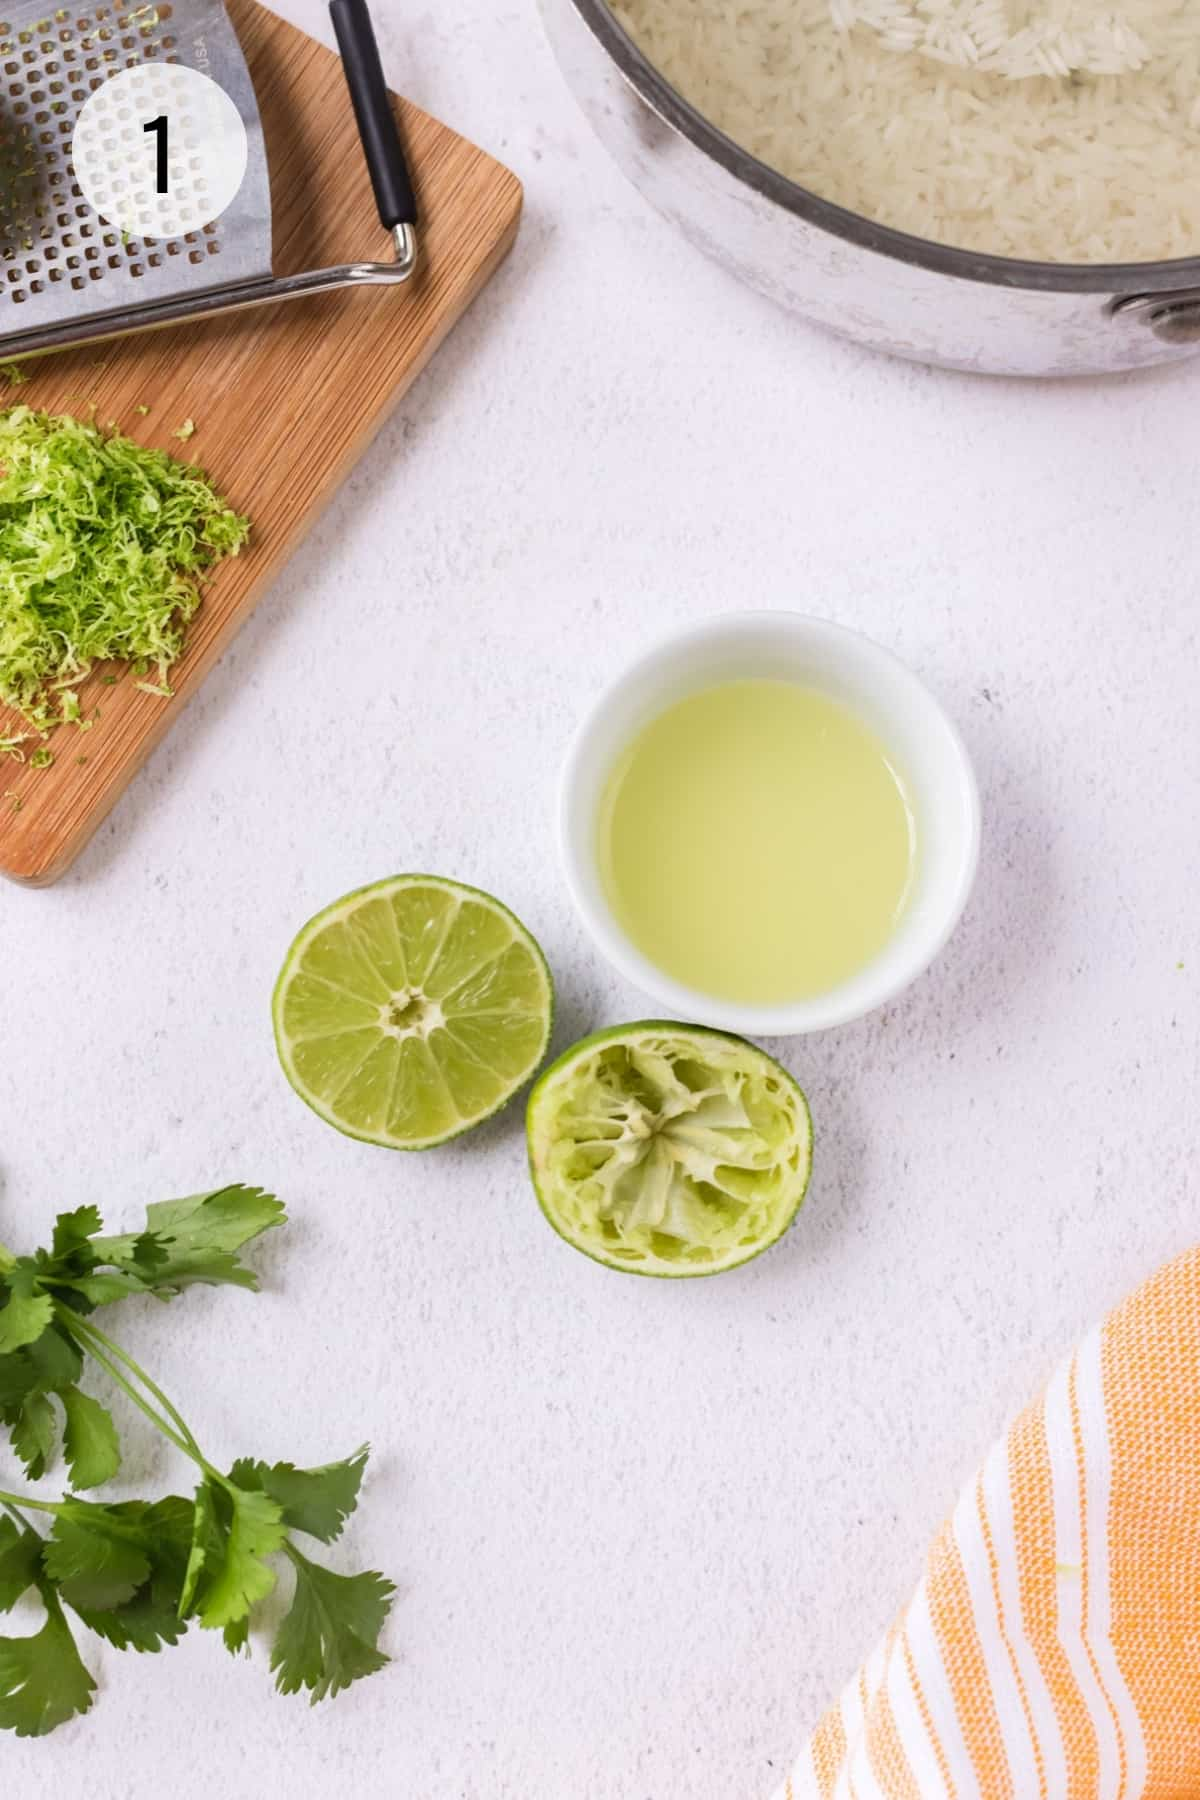 Bowl of fresh lime juice with cut limes adjacent, one squeezed and cutting board with lime zest and zester and silver pan of rice in upper background.